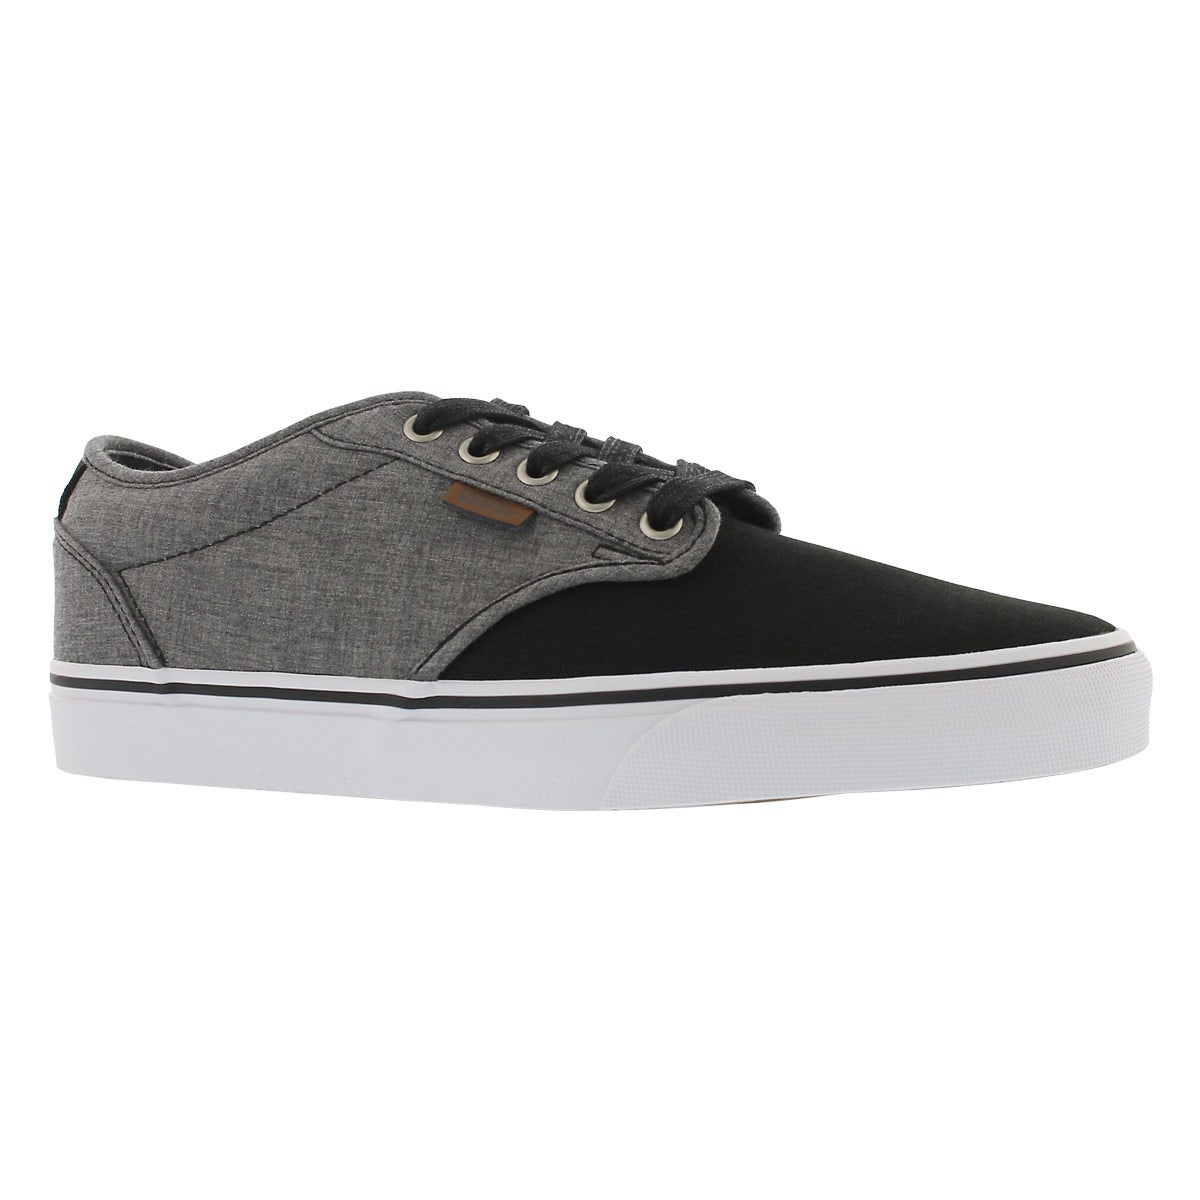 Men's ATWOOD DELUXE black/grey sneakers